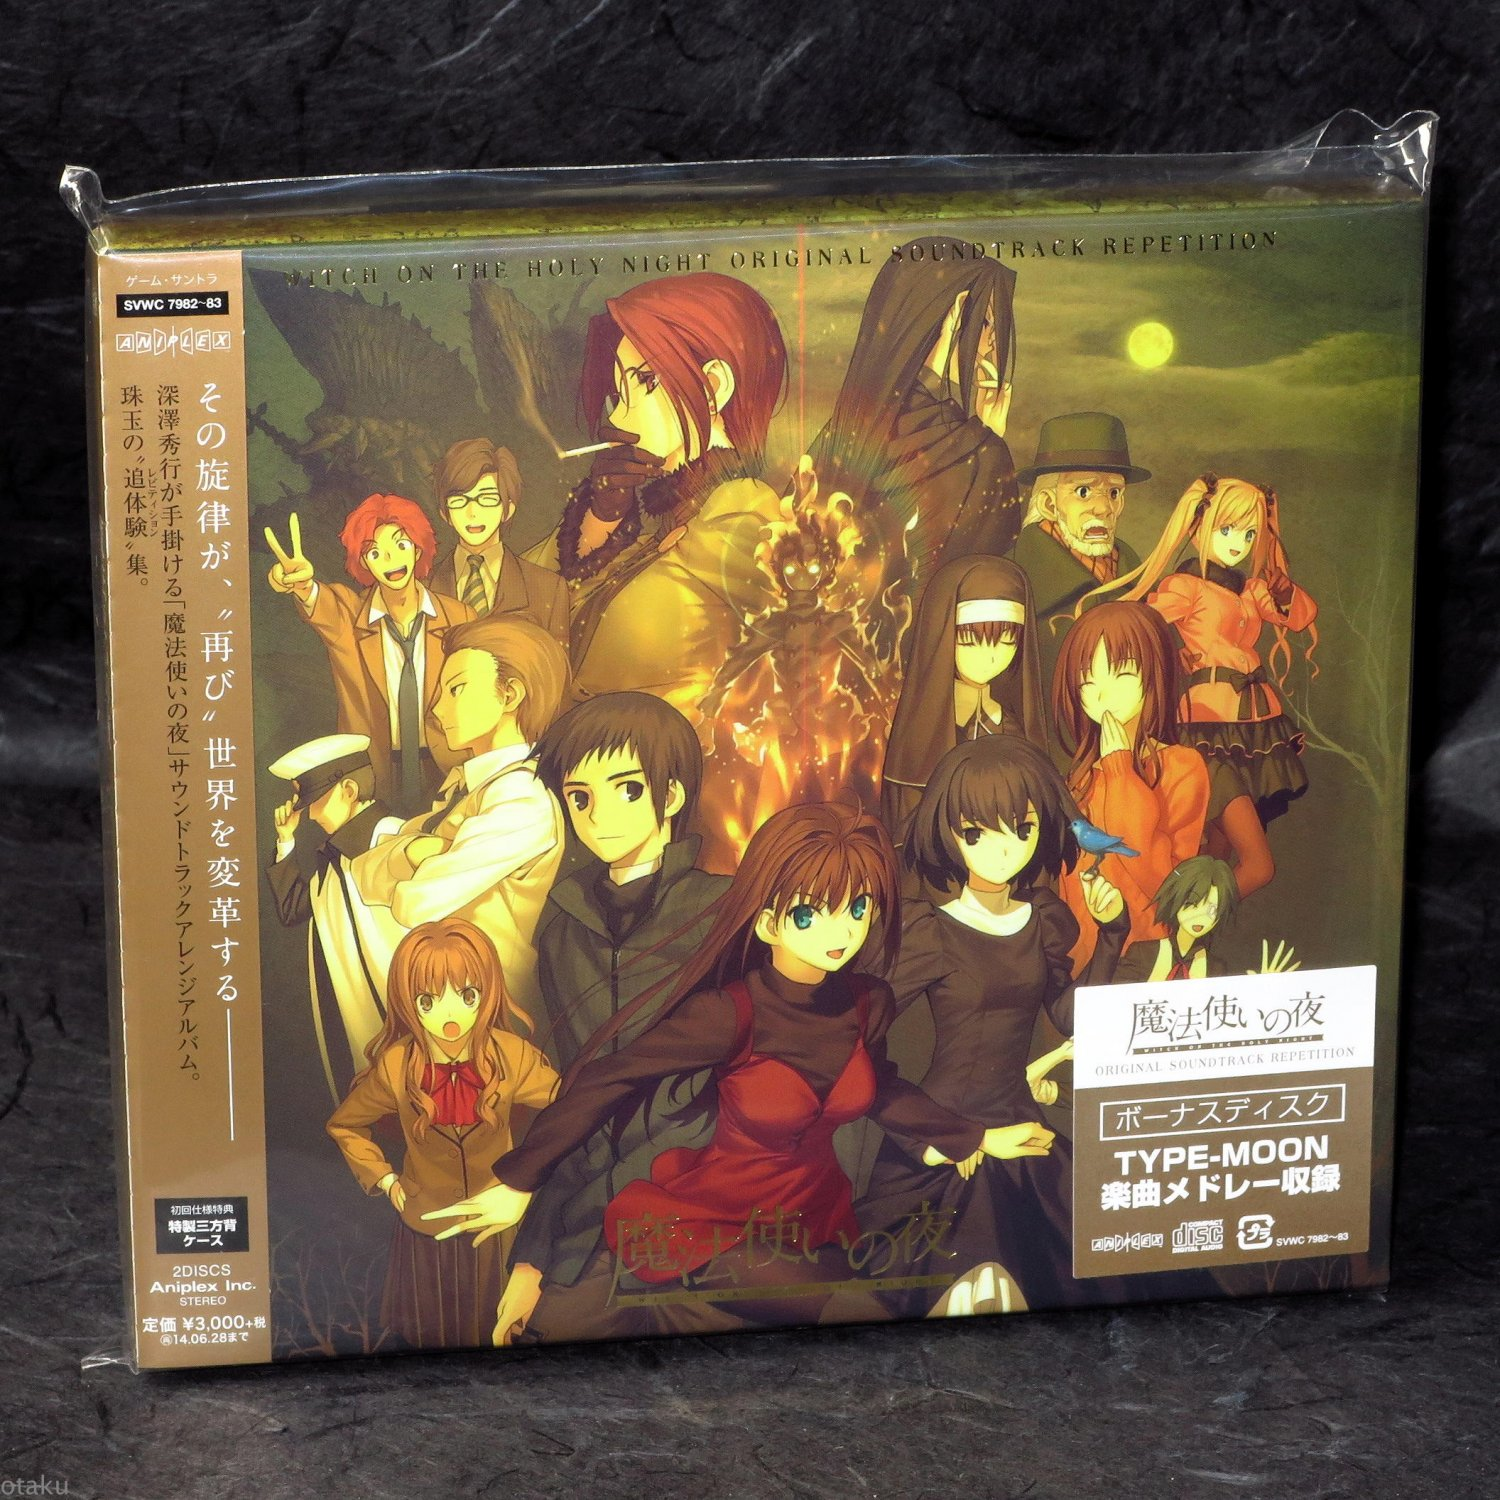 Witch On The Holy Night Original Soundtrack Repetition Japan Game Music CD NEW